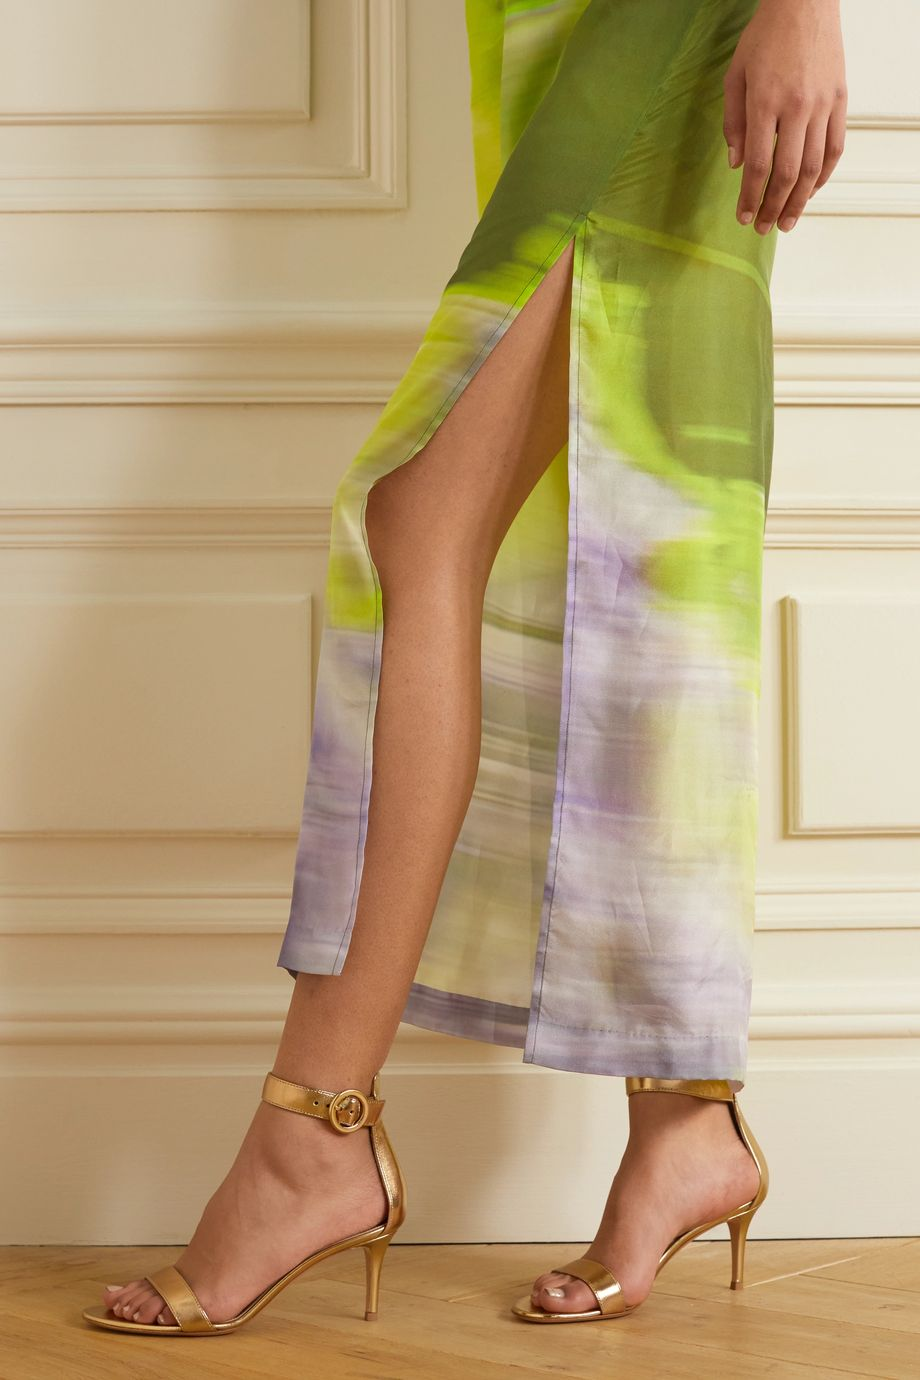 Gianvito Rossi Portofino 70 metallic leather sandals